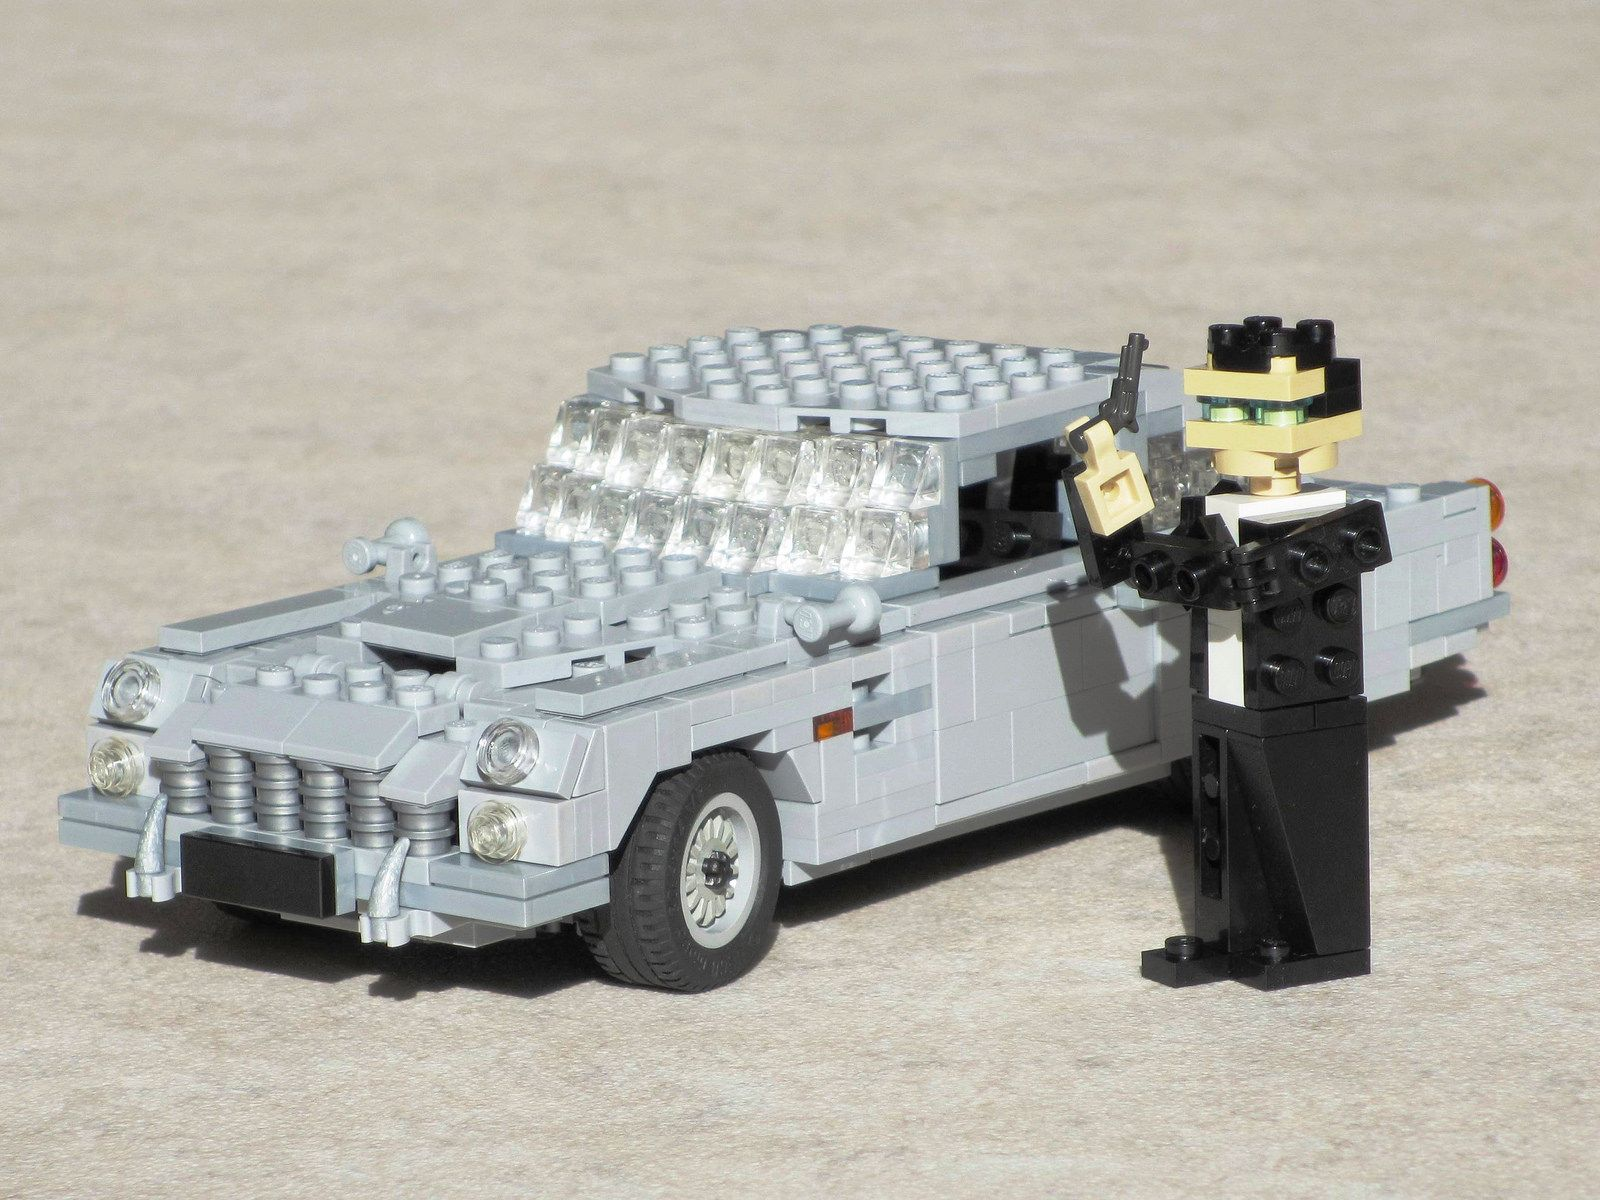 james bond's aston martin db5: a lego® creationchris white